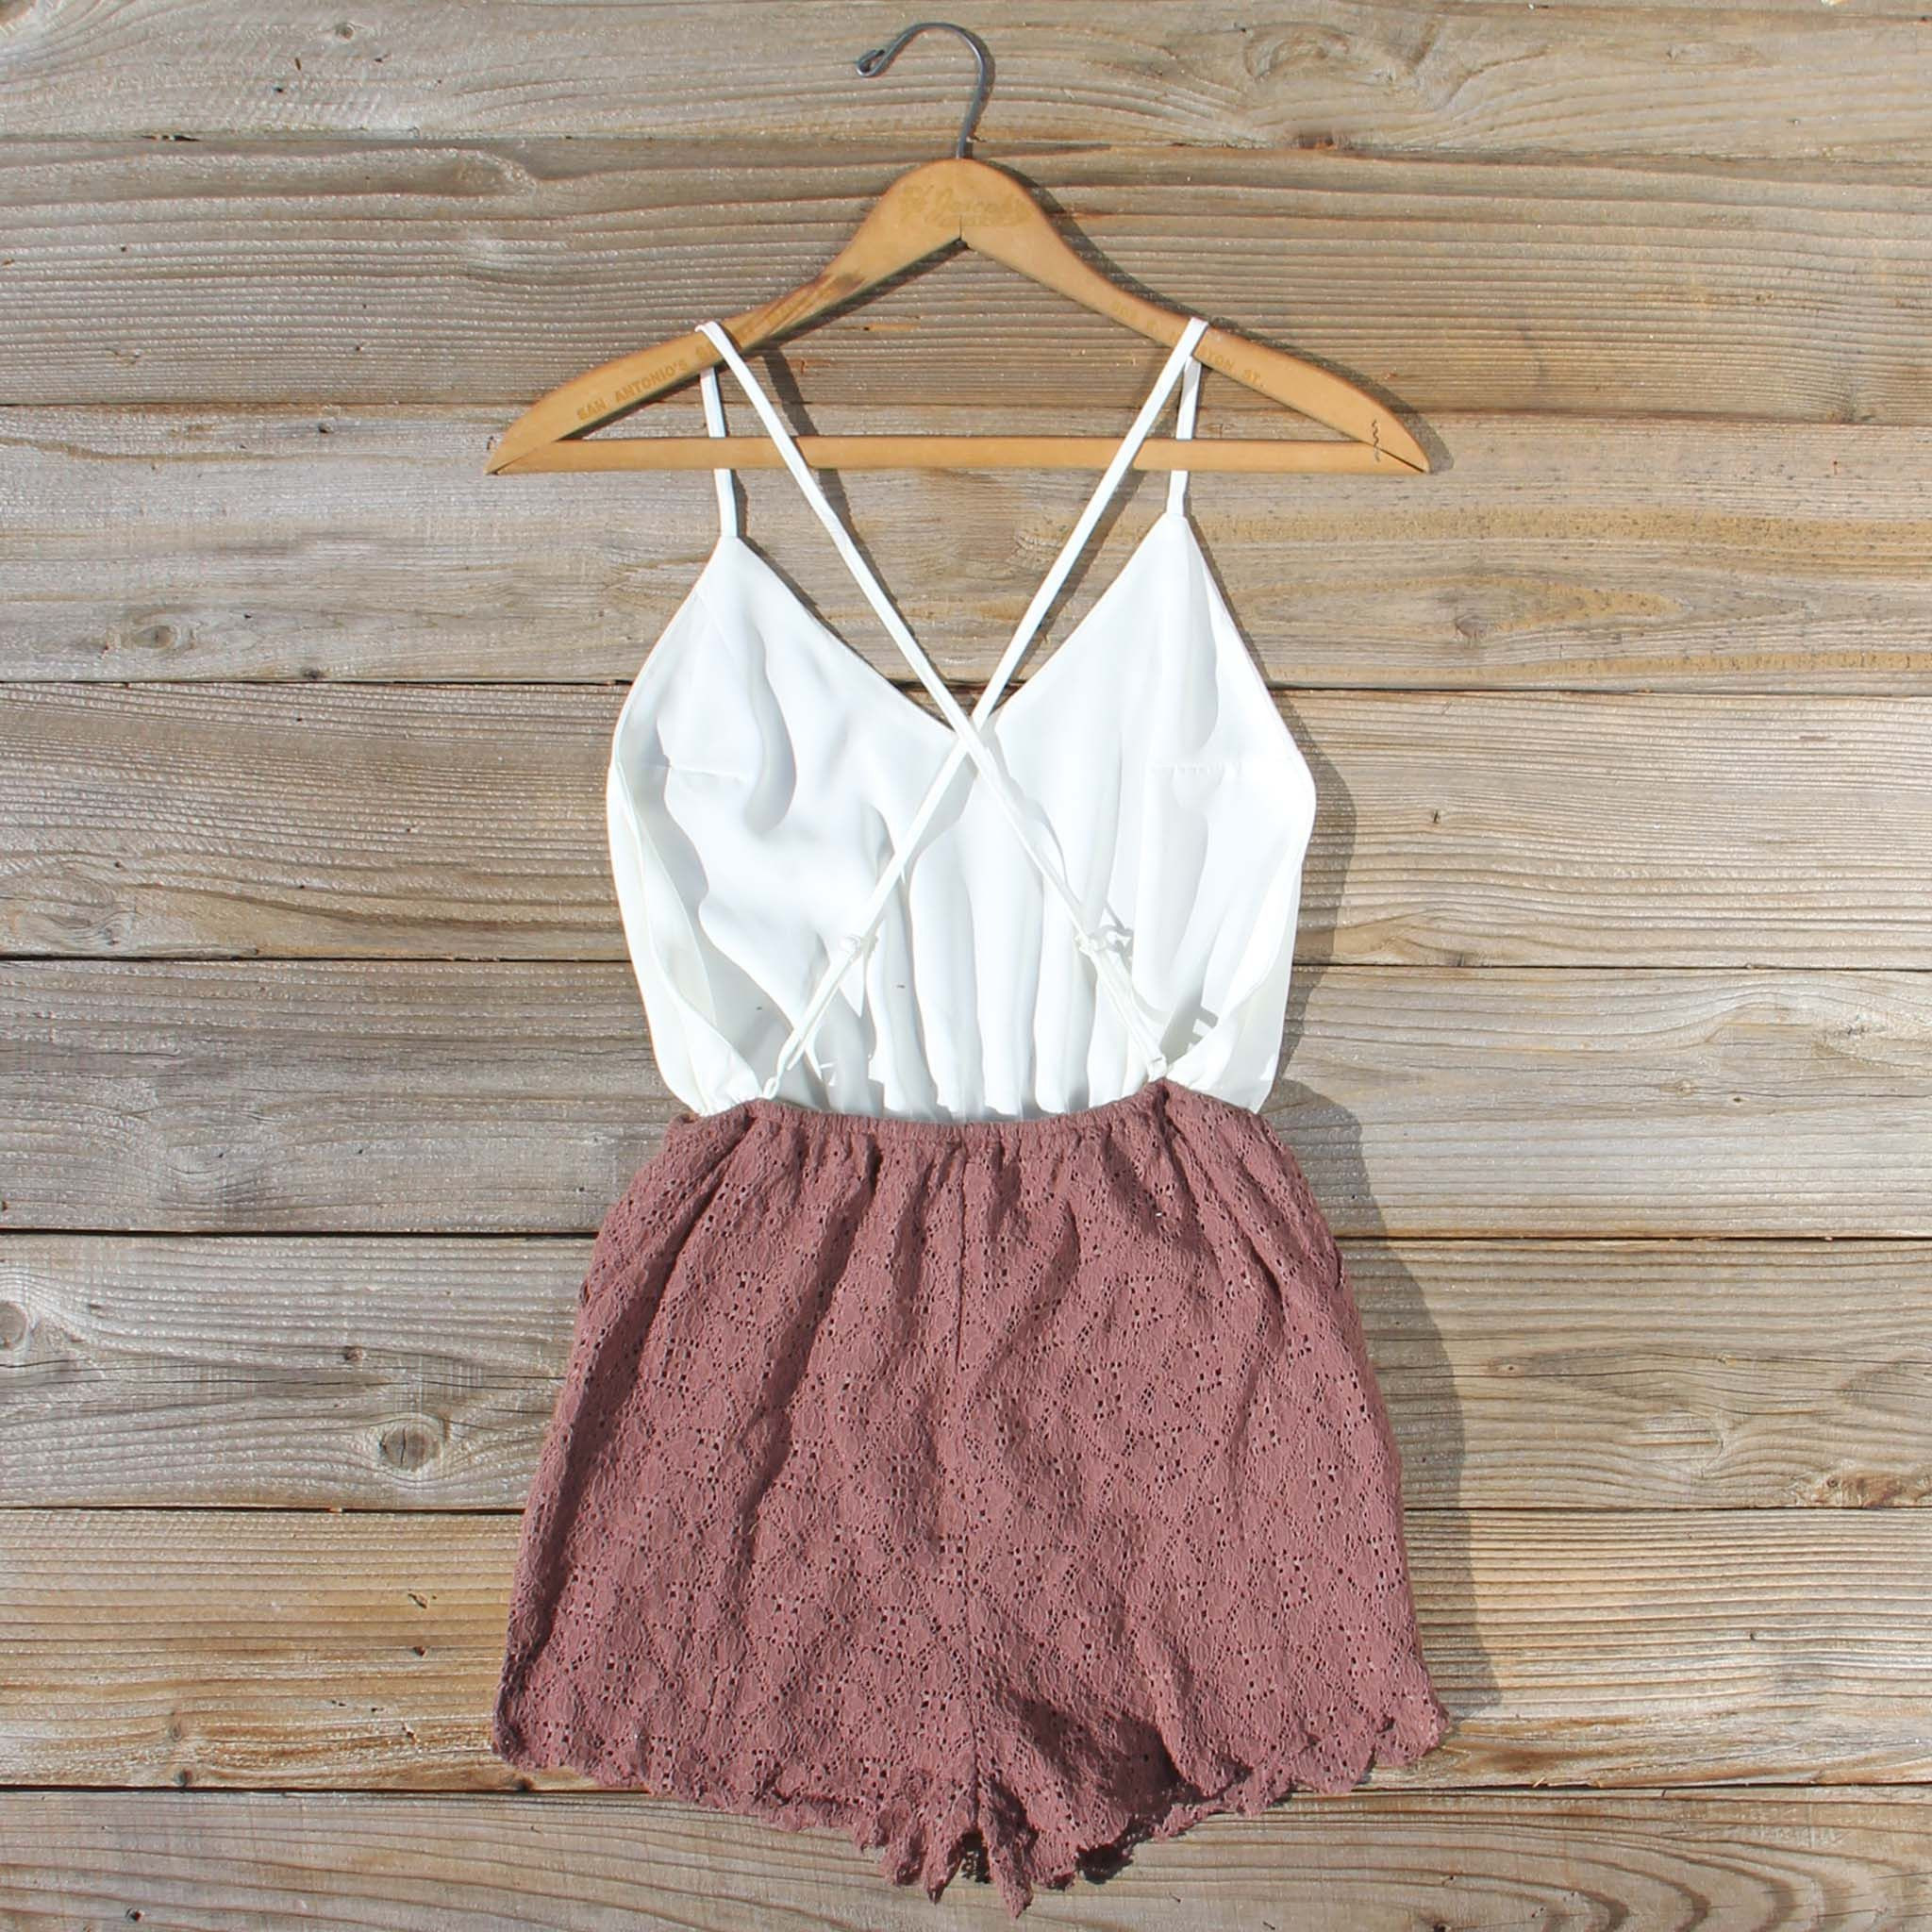 26d71cd64c7 Adobe Lace Romper - a sweet strappy back pairs and lace details add the  perfect touch to this sweet romper. Shop all our new affordable romper and  dress ...